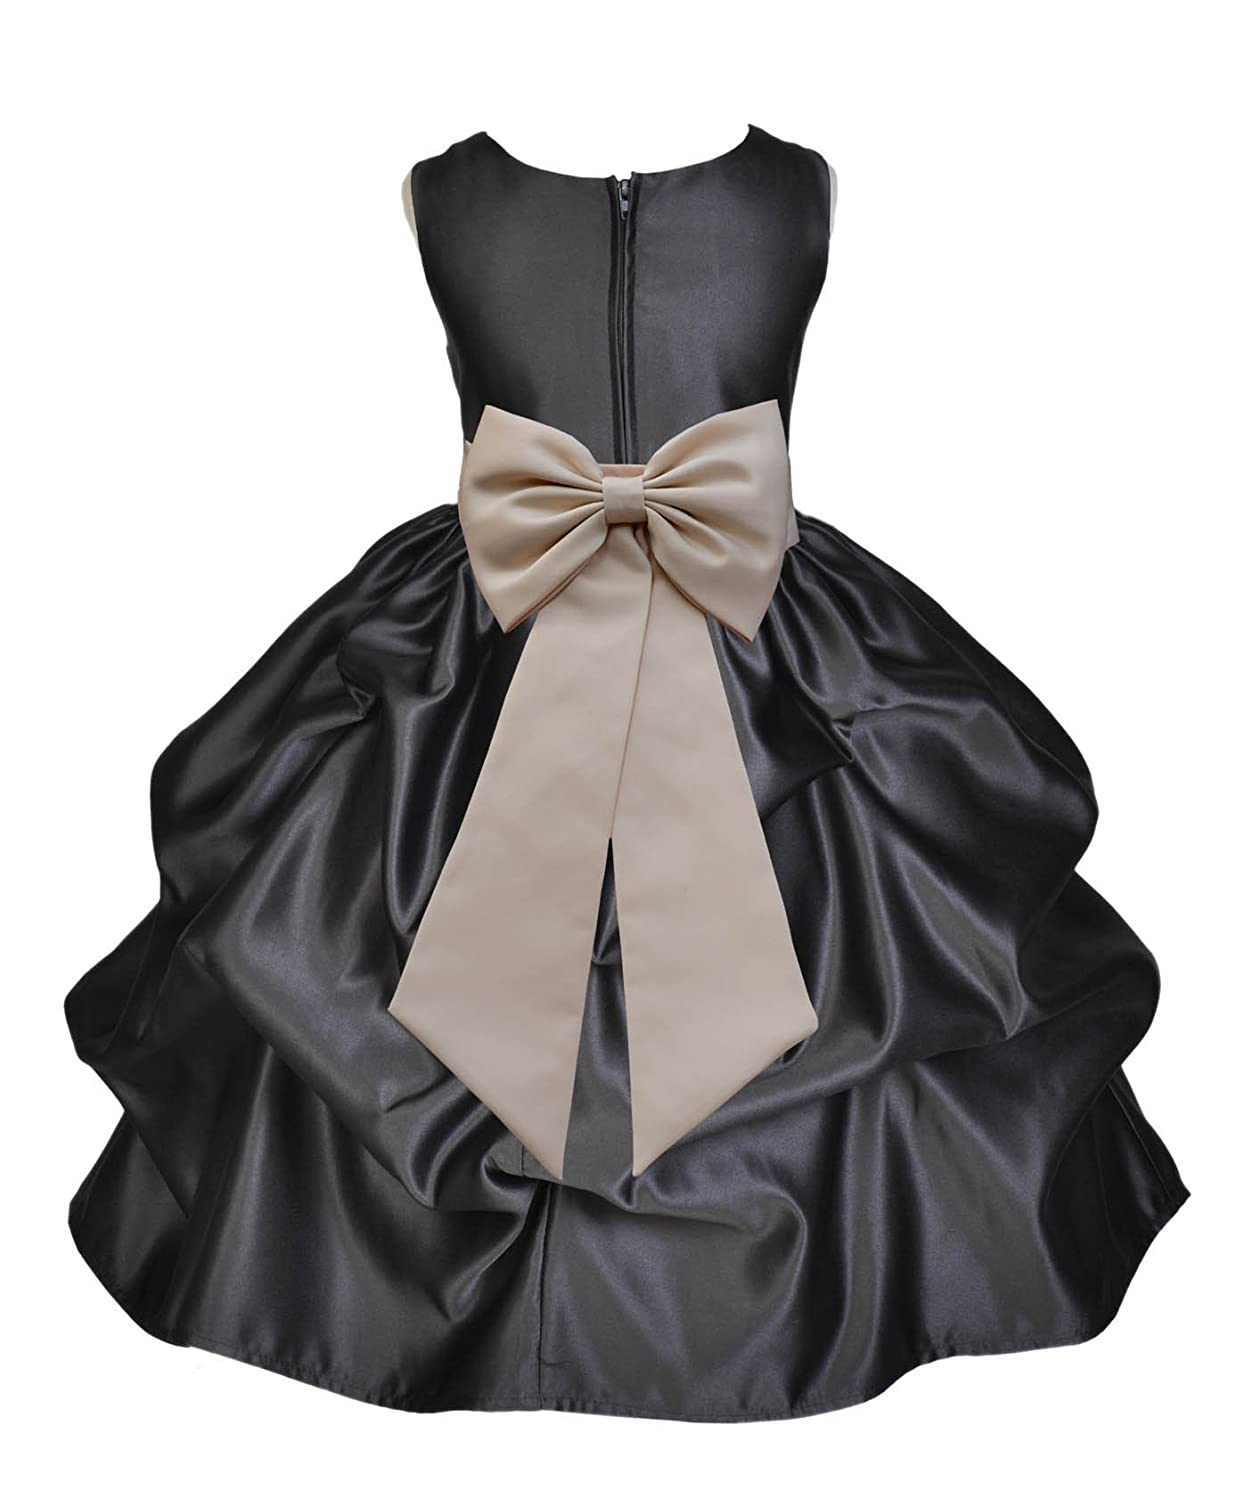 ekidsbridal Black Satin Bubble Pick-up Junior Flower Girl Dresses Ballroom Gown 208T